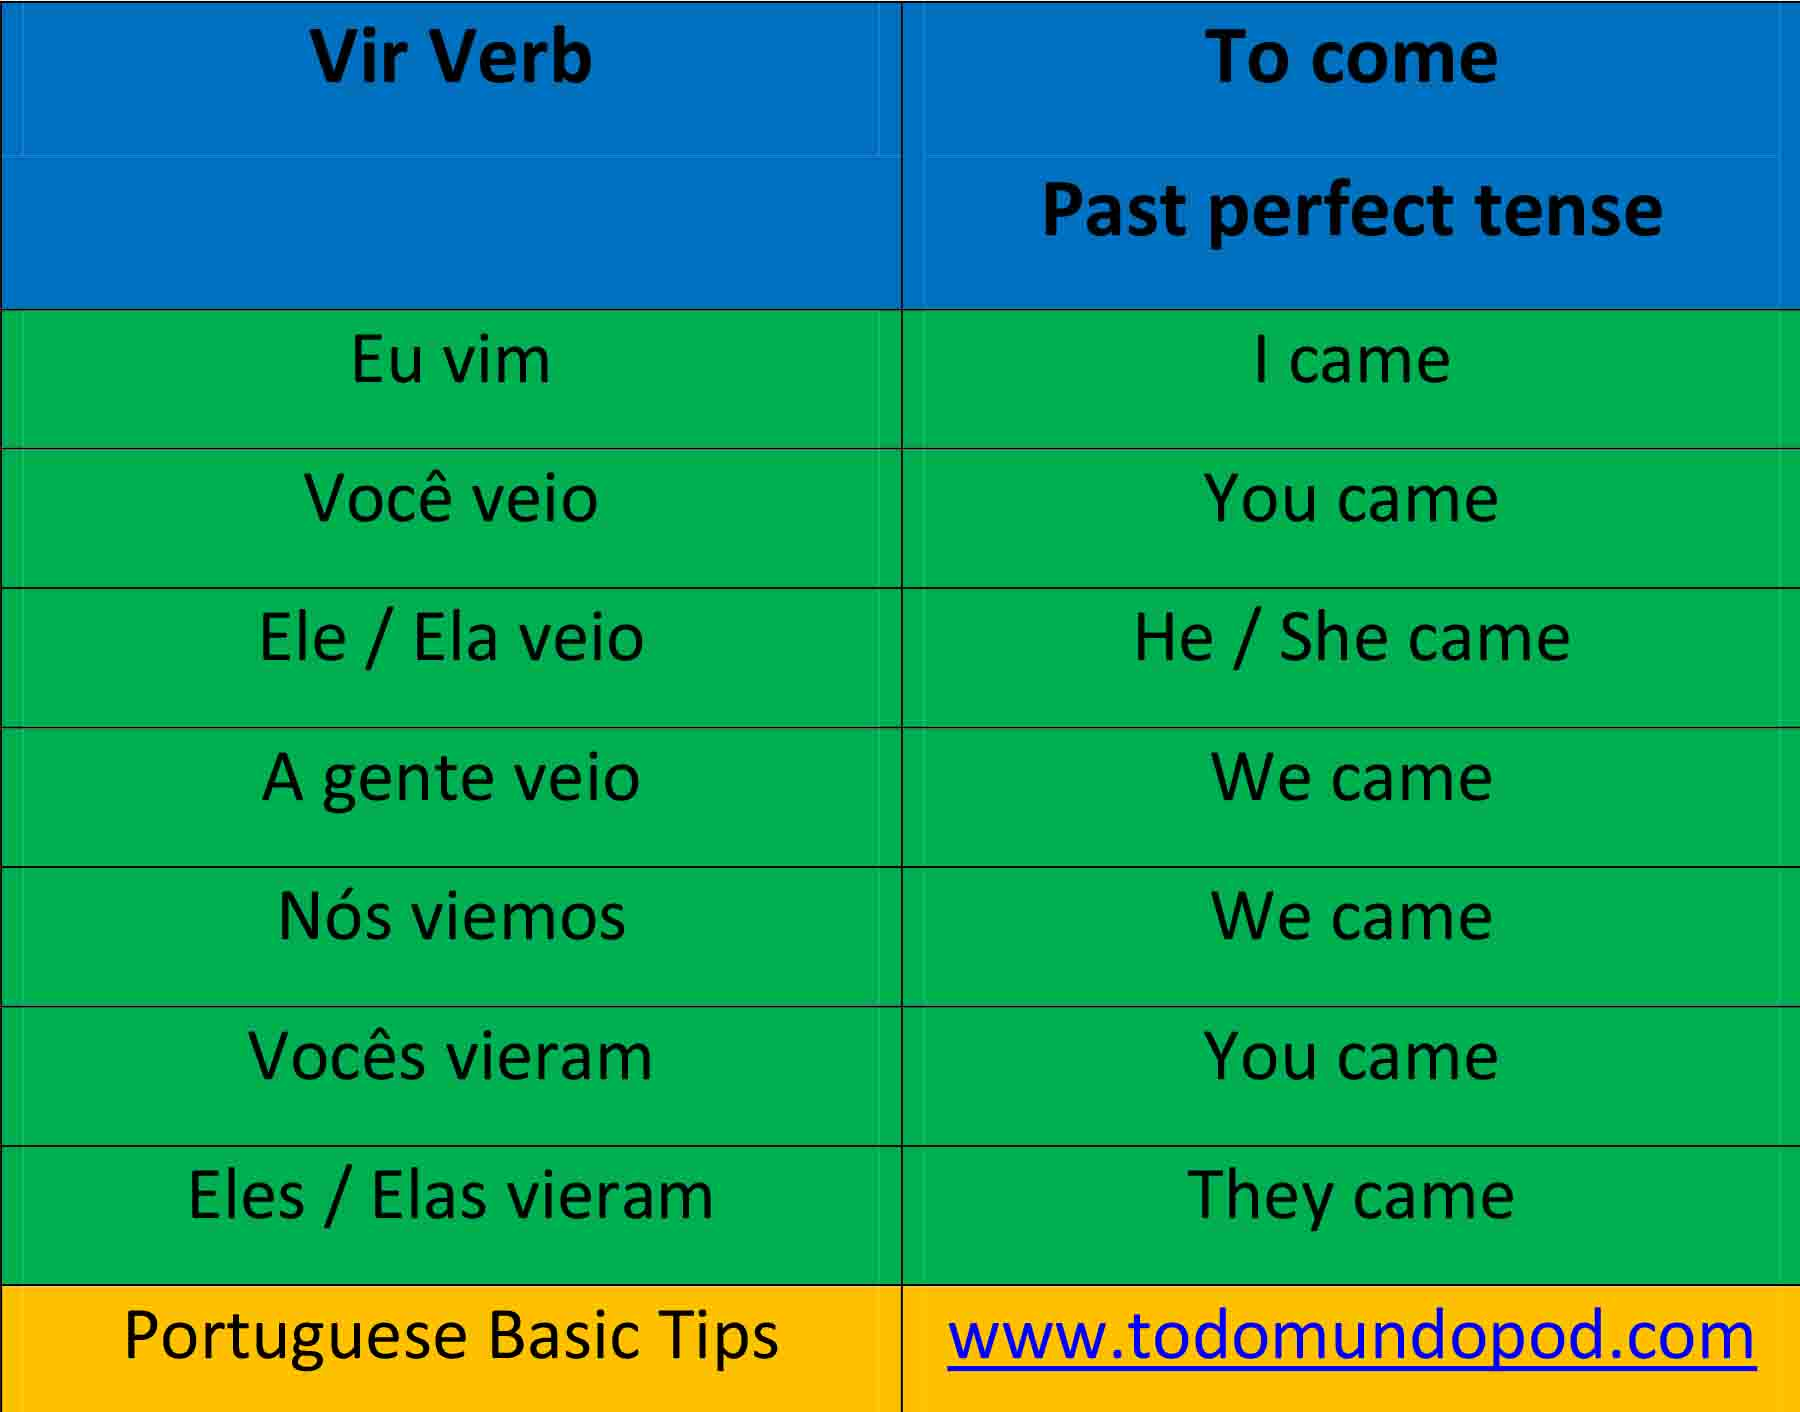 Vir verb conjugation in Portuguese - past perfect tense